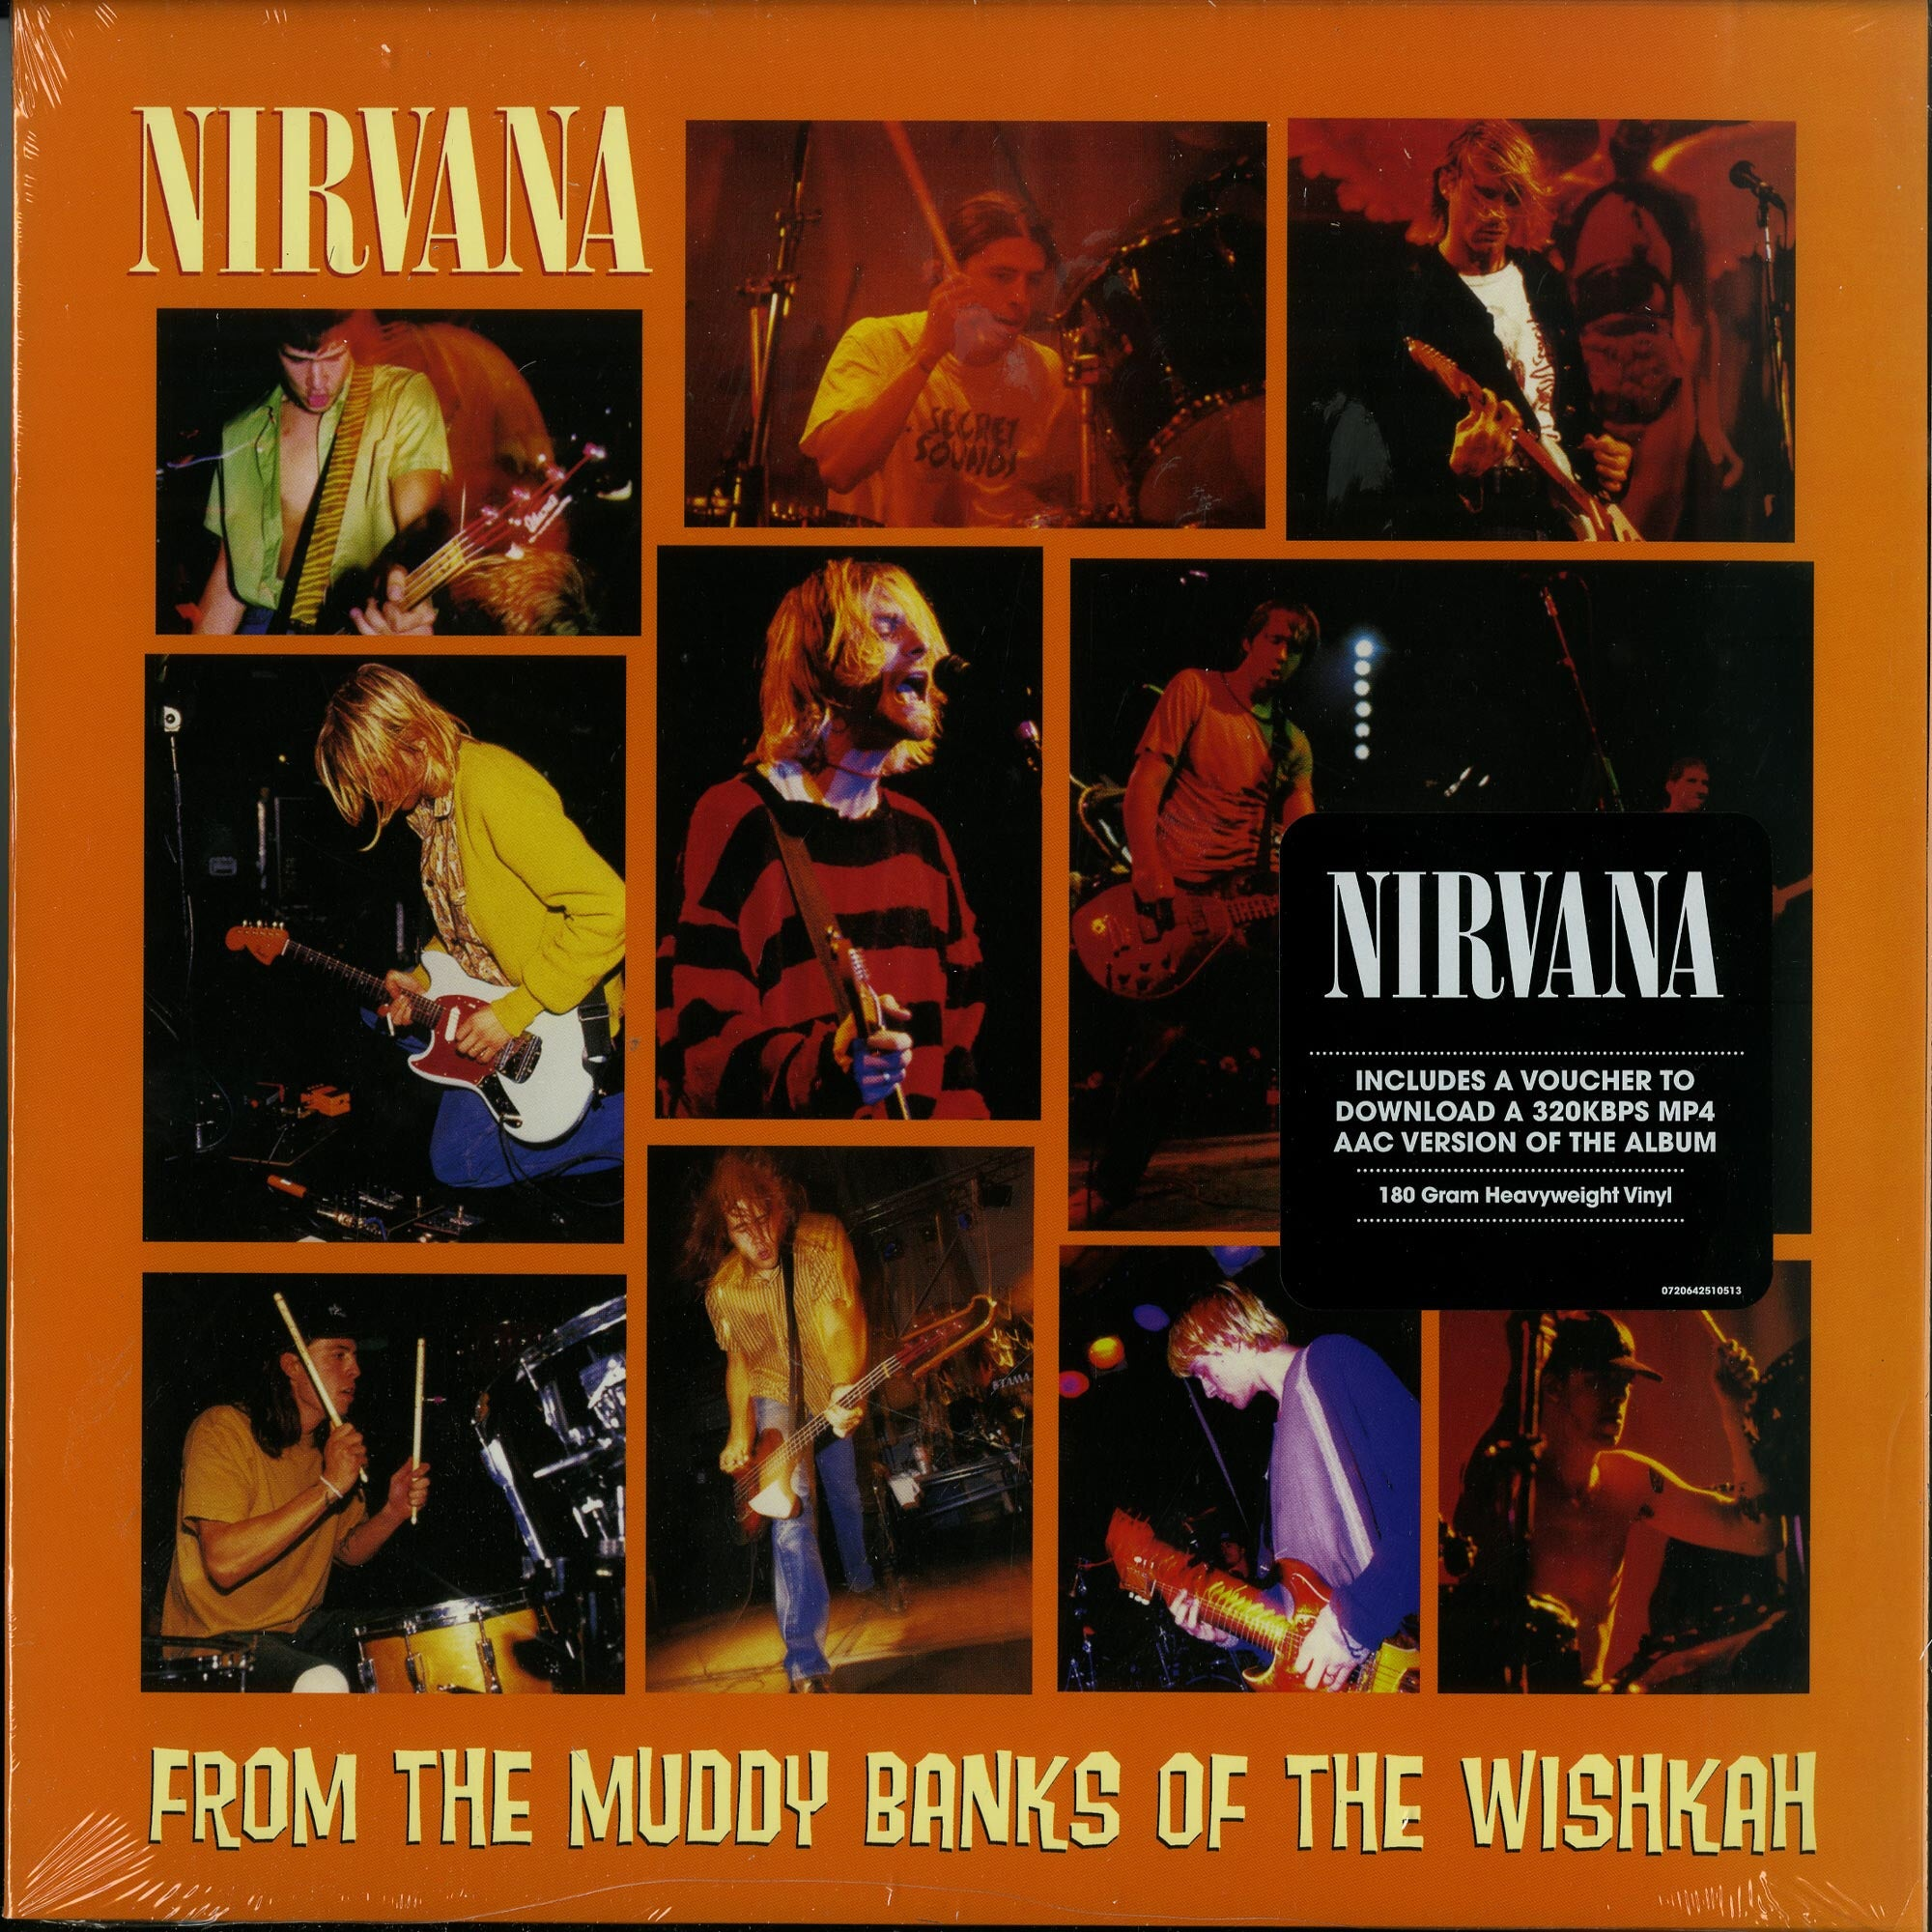 Nirvana - From The Muddy Banks Of The Wishkah